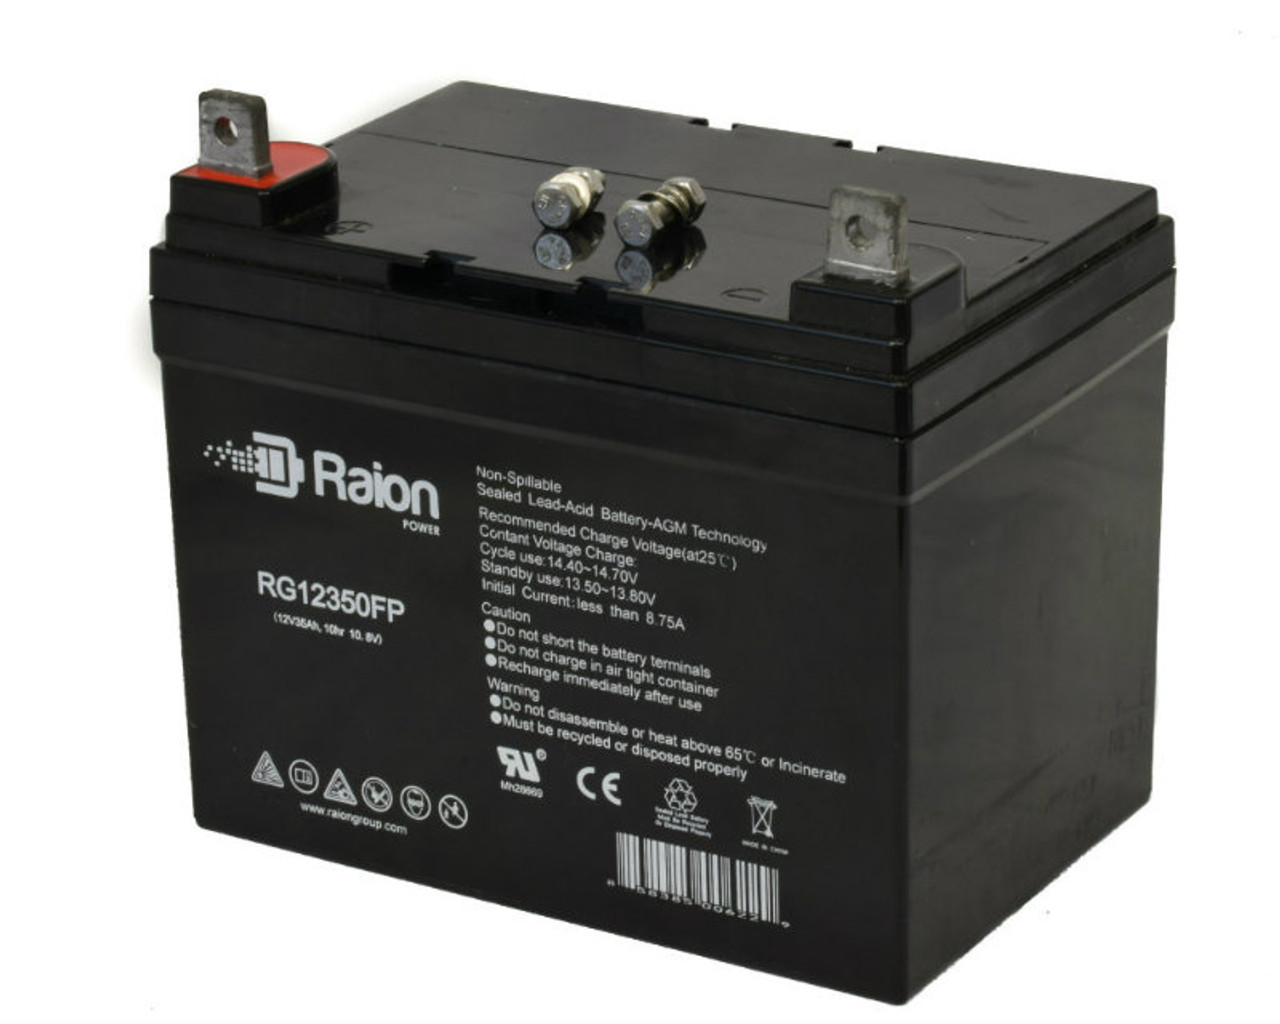 RG12350FP Sealed Lead Acid Battery Pack For Invacare Action Narrow Mobility Scooter